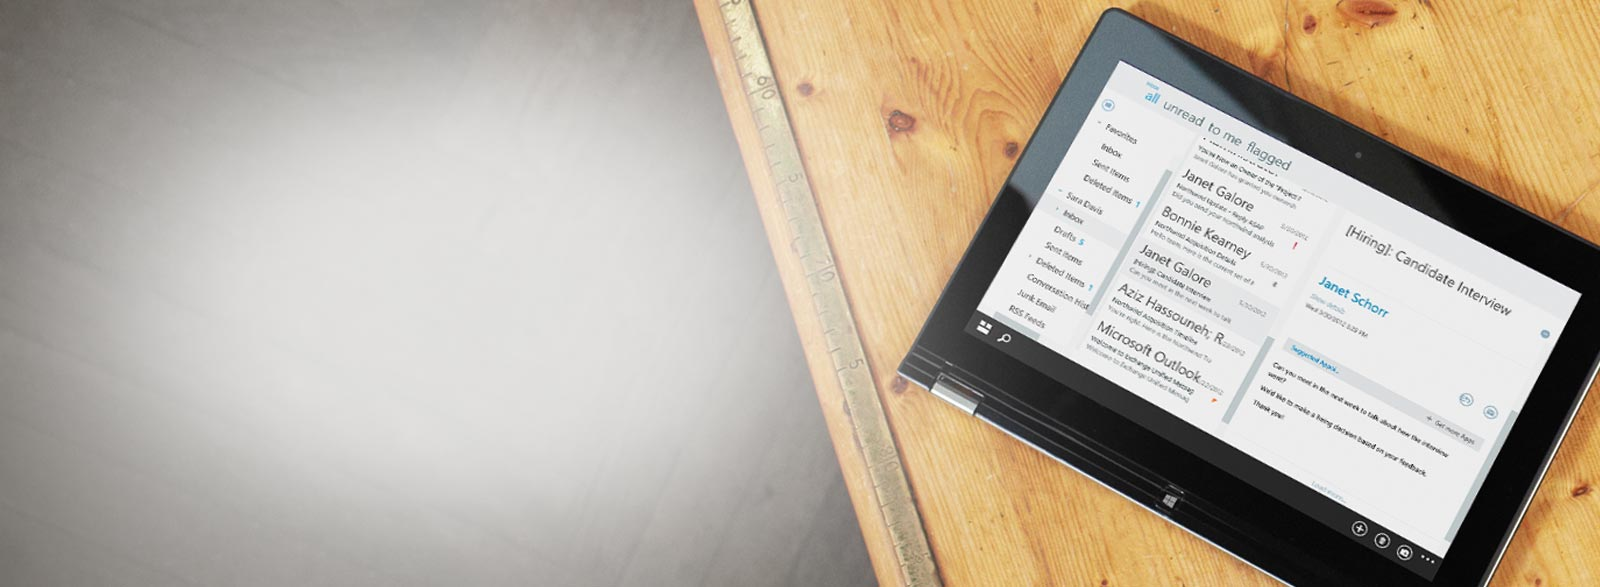 A tablet on a table, showing a close-up of a business email inbox, powered by Exchange.